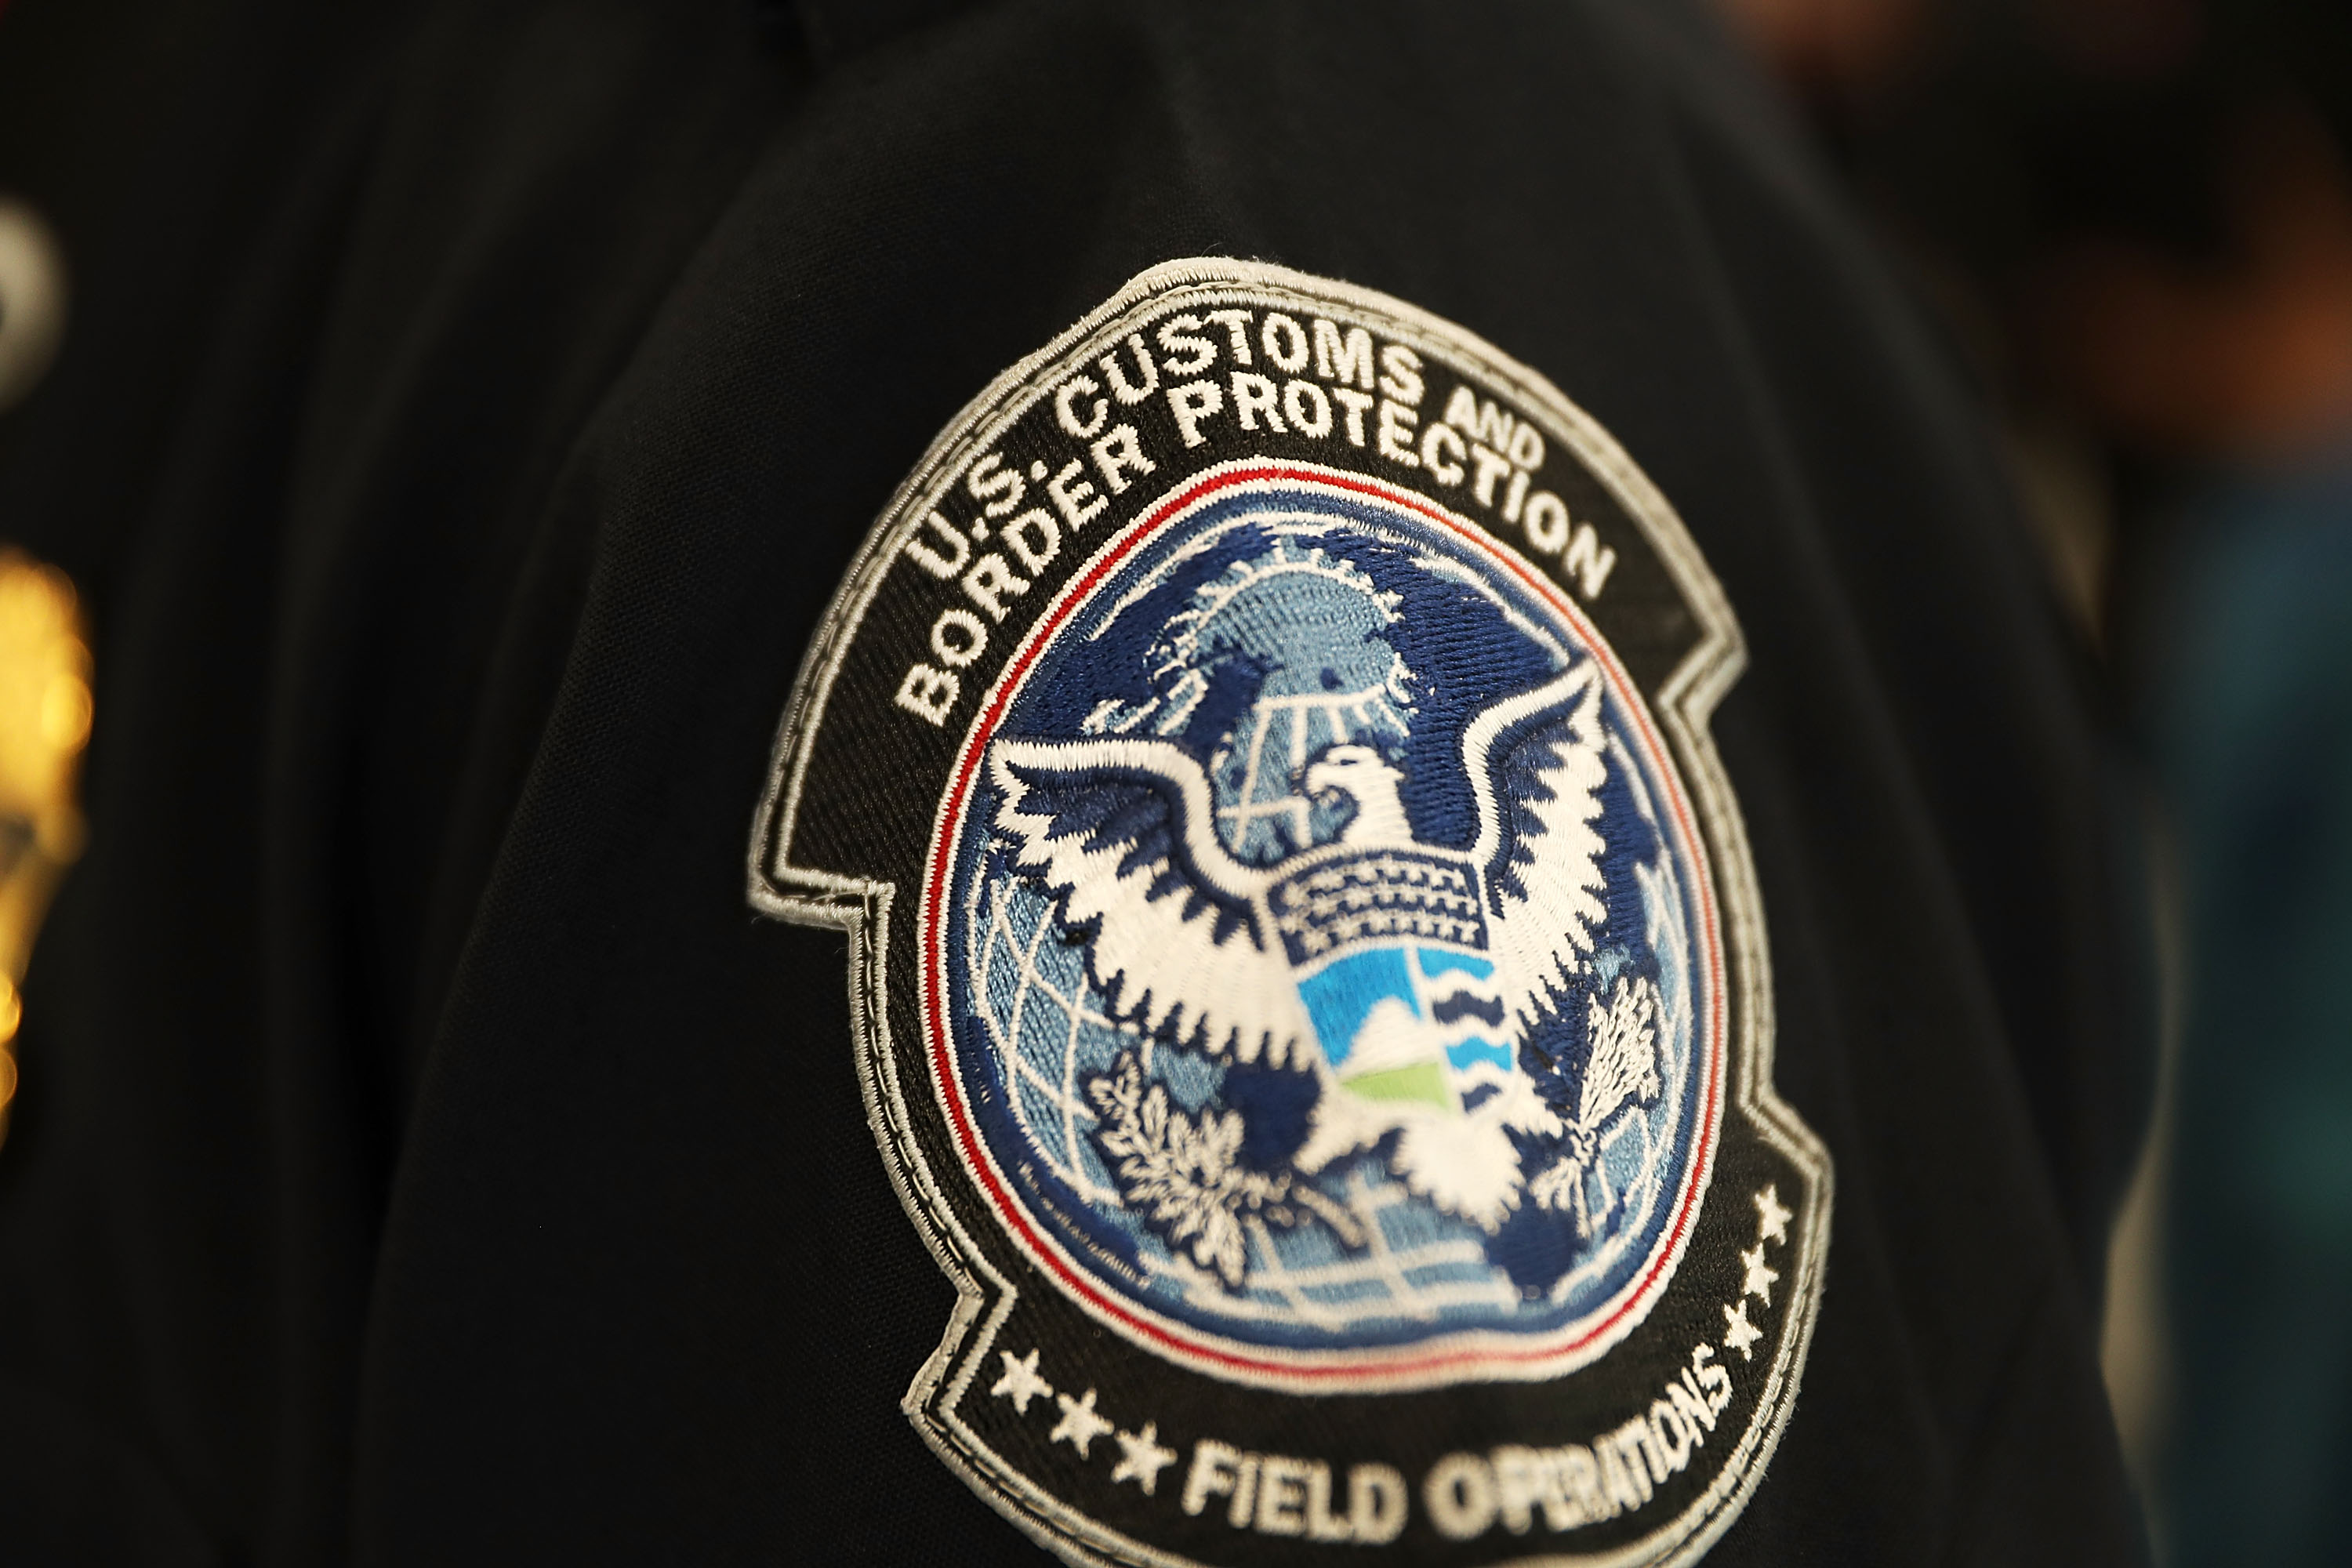 A patch is seen on the sleeve of a U.S. Customs and Border Protection officer at Miami International Airport on Feb. 27, 2018 in Miami, Florida.